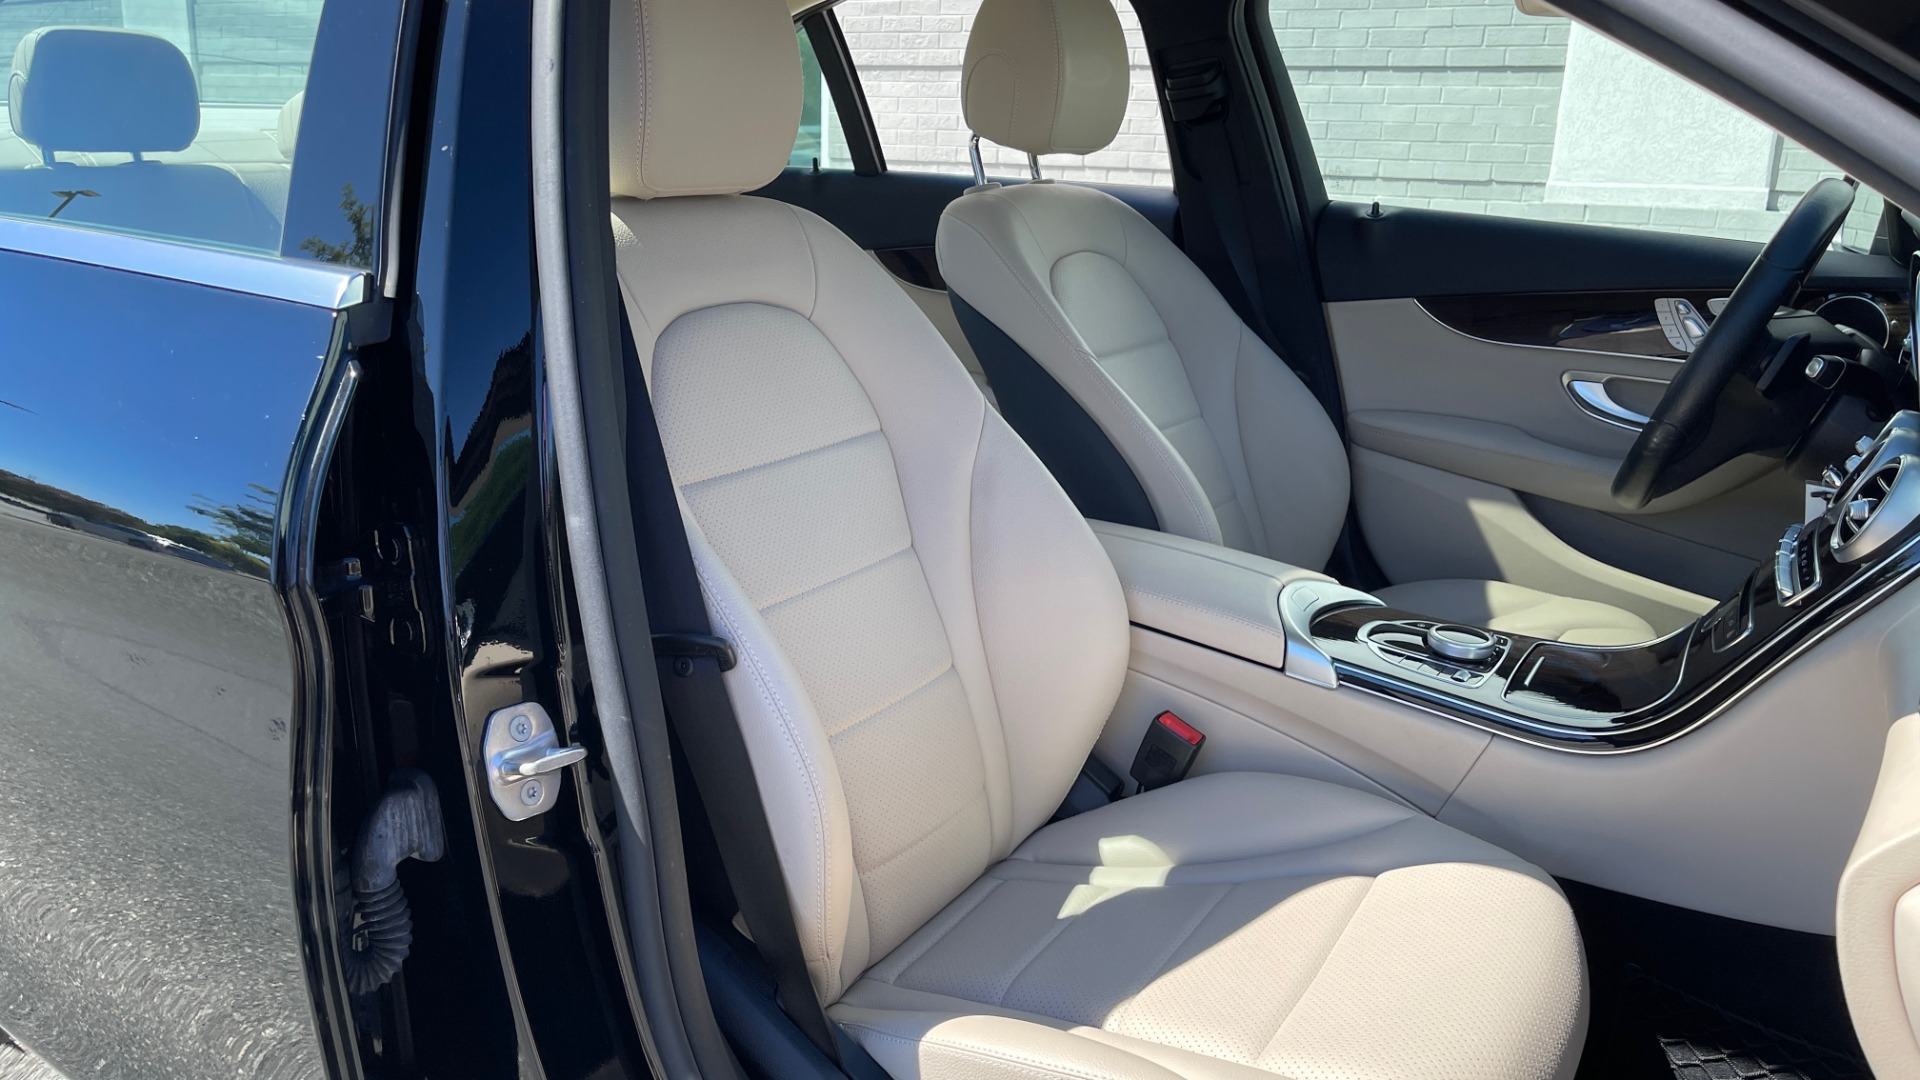 Used 2018 Mercedes-Benz C-CLASS C 300 PREMIUM / APPLE CARPLAY / SUNROOF / REARVIEW for sale $31,995 at Formula Imports in Charlotte NC 28227 57